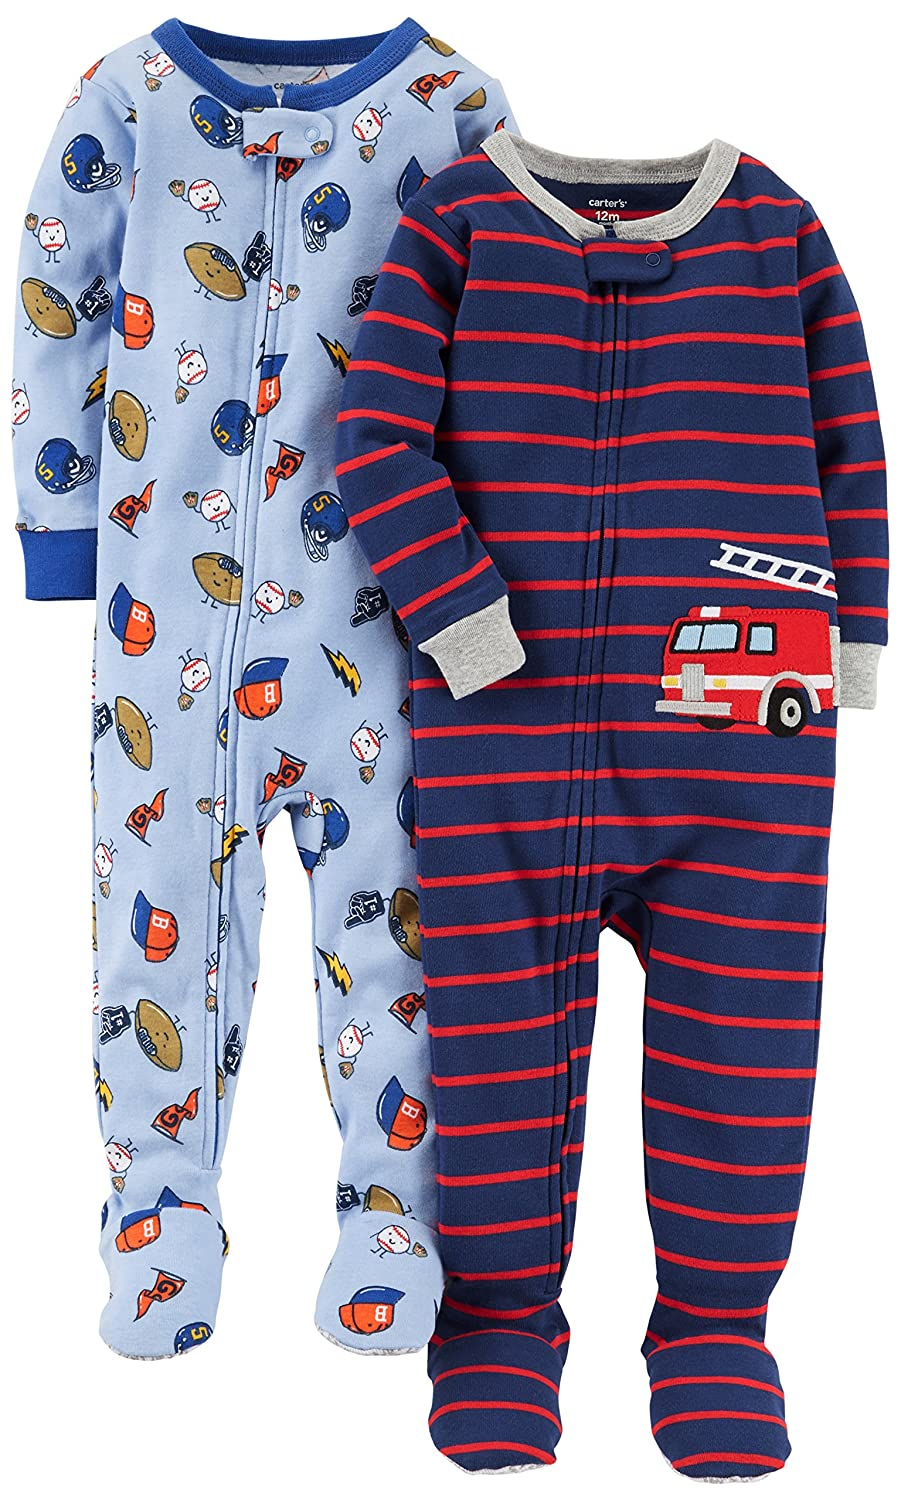 021e191d8 Amazon.com  Carter s Baby Boys  2-Pack Cotton Footed Pajamas  Clothing